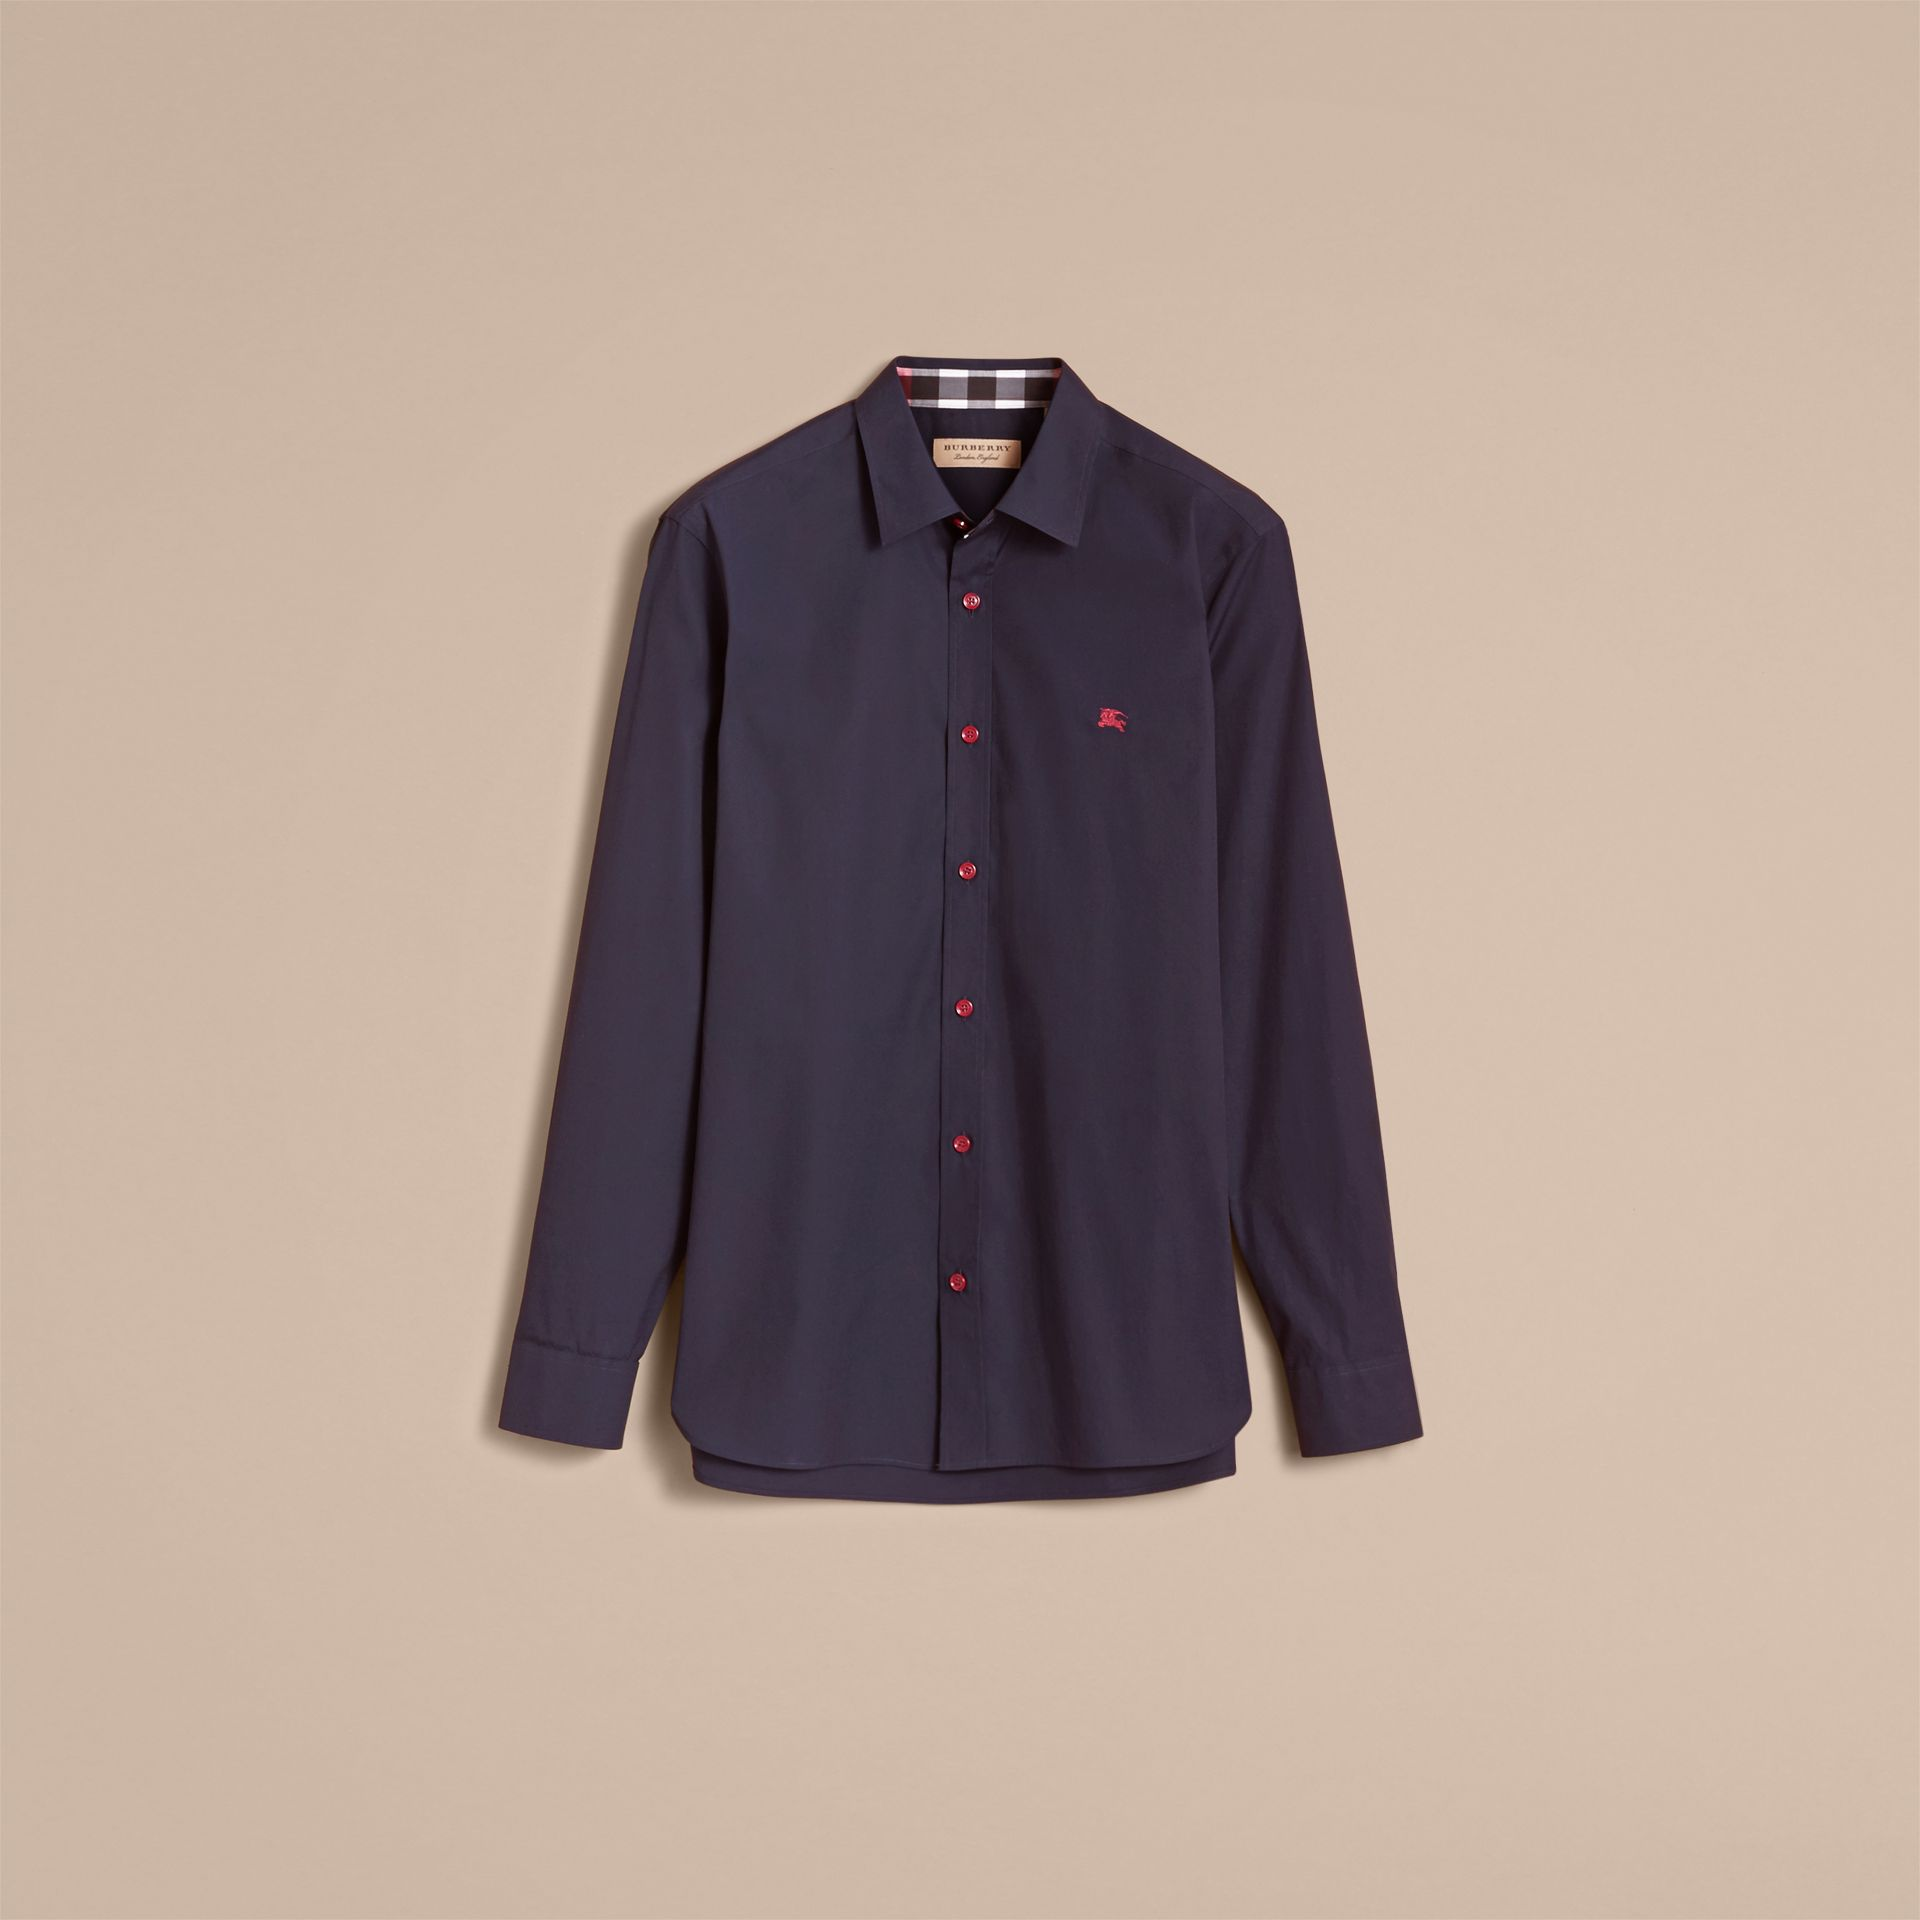 Resin Button Cotton Poplin Shirt in Navy - Men | Burberry - gallery image 3